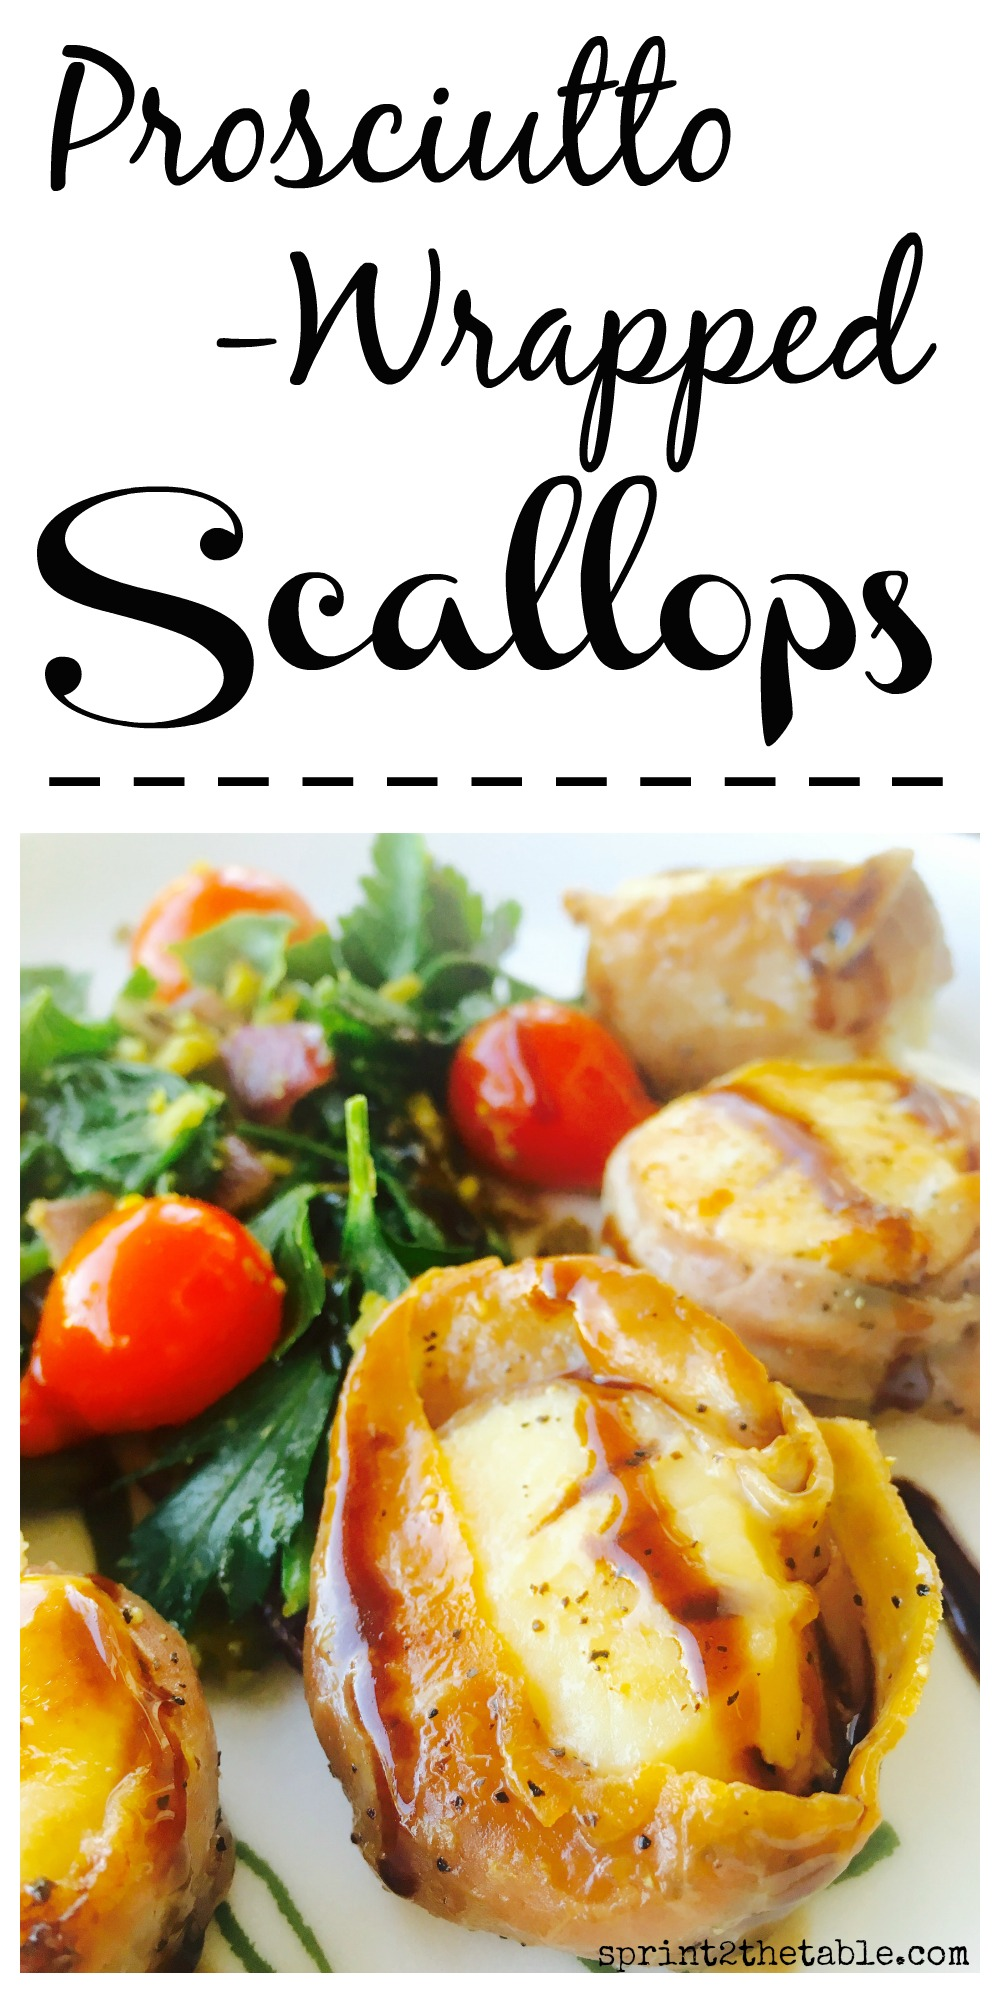 Easy Prosciutto-Wrapped Scallops with Balsamic - these fancy-looking scallops are actually quite easy and come together in minutes